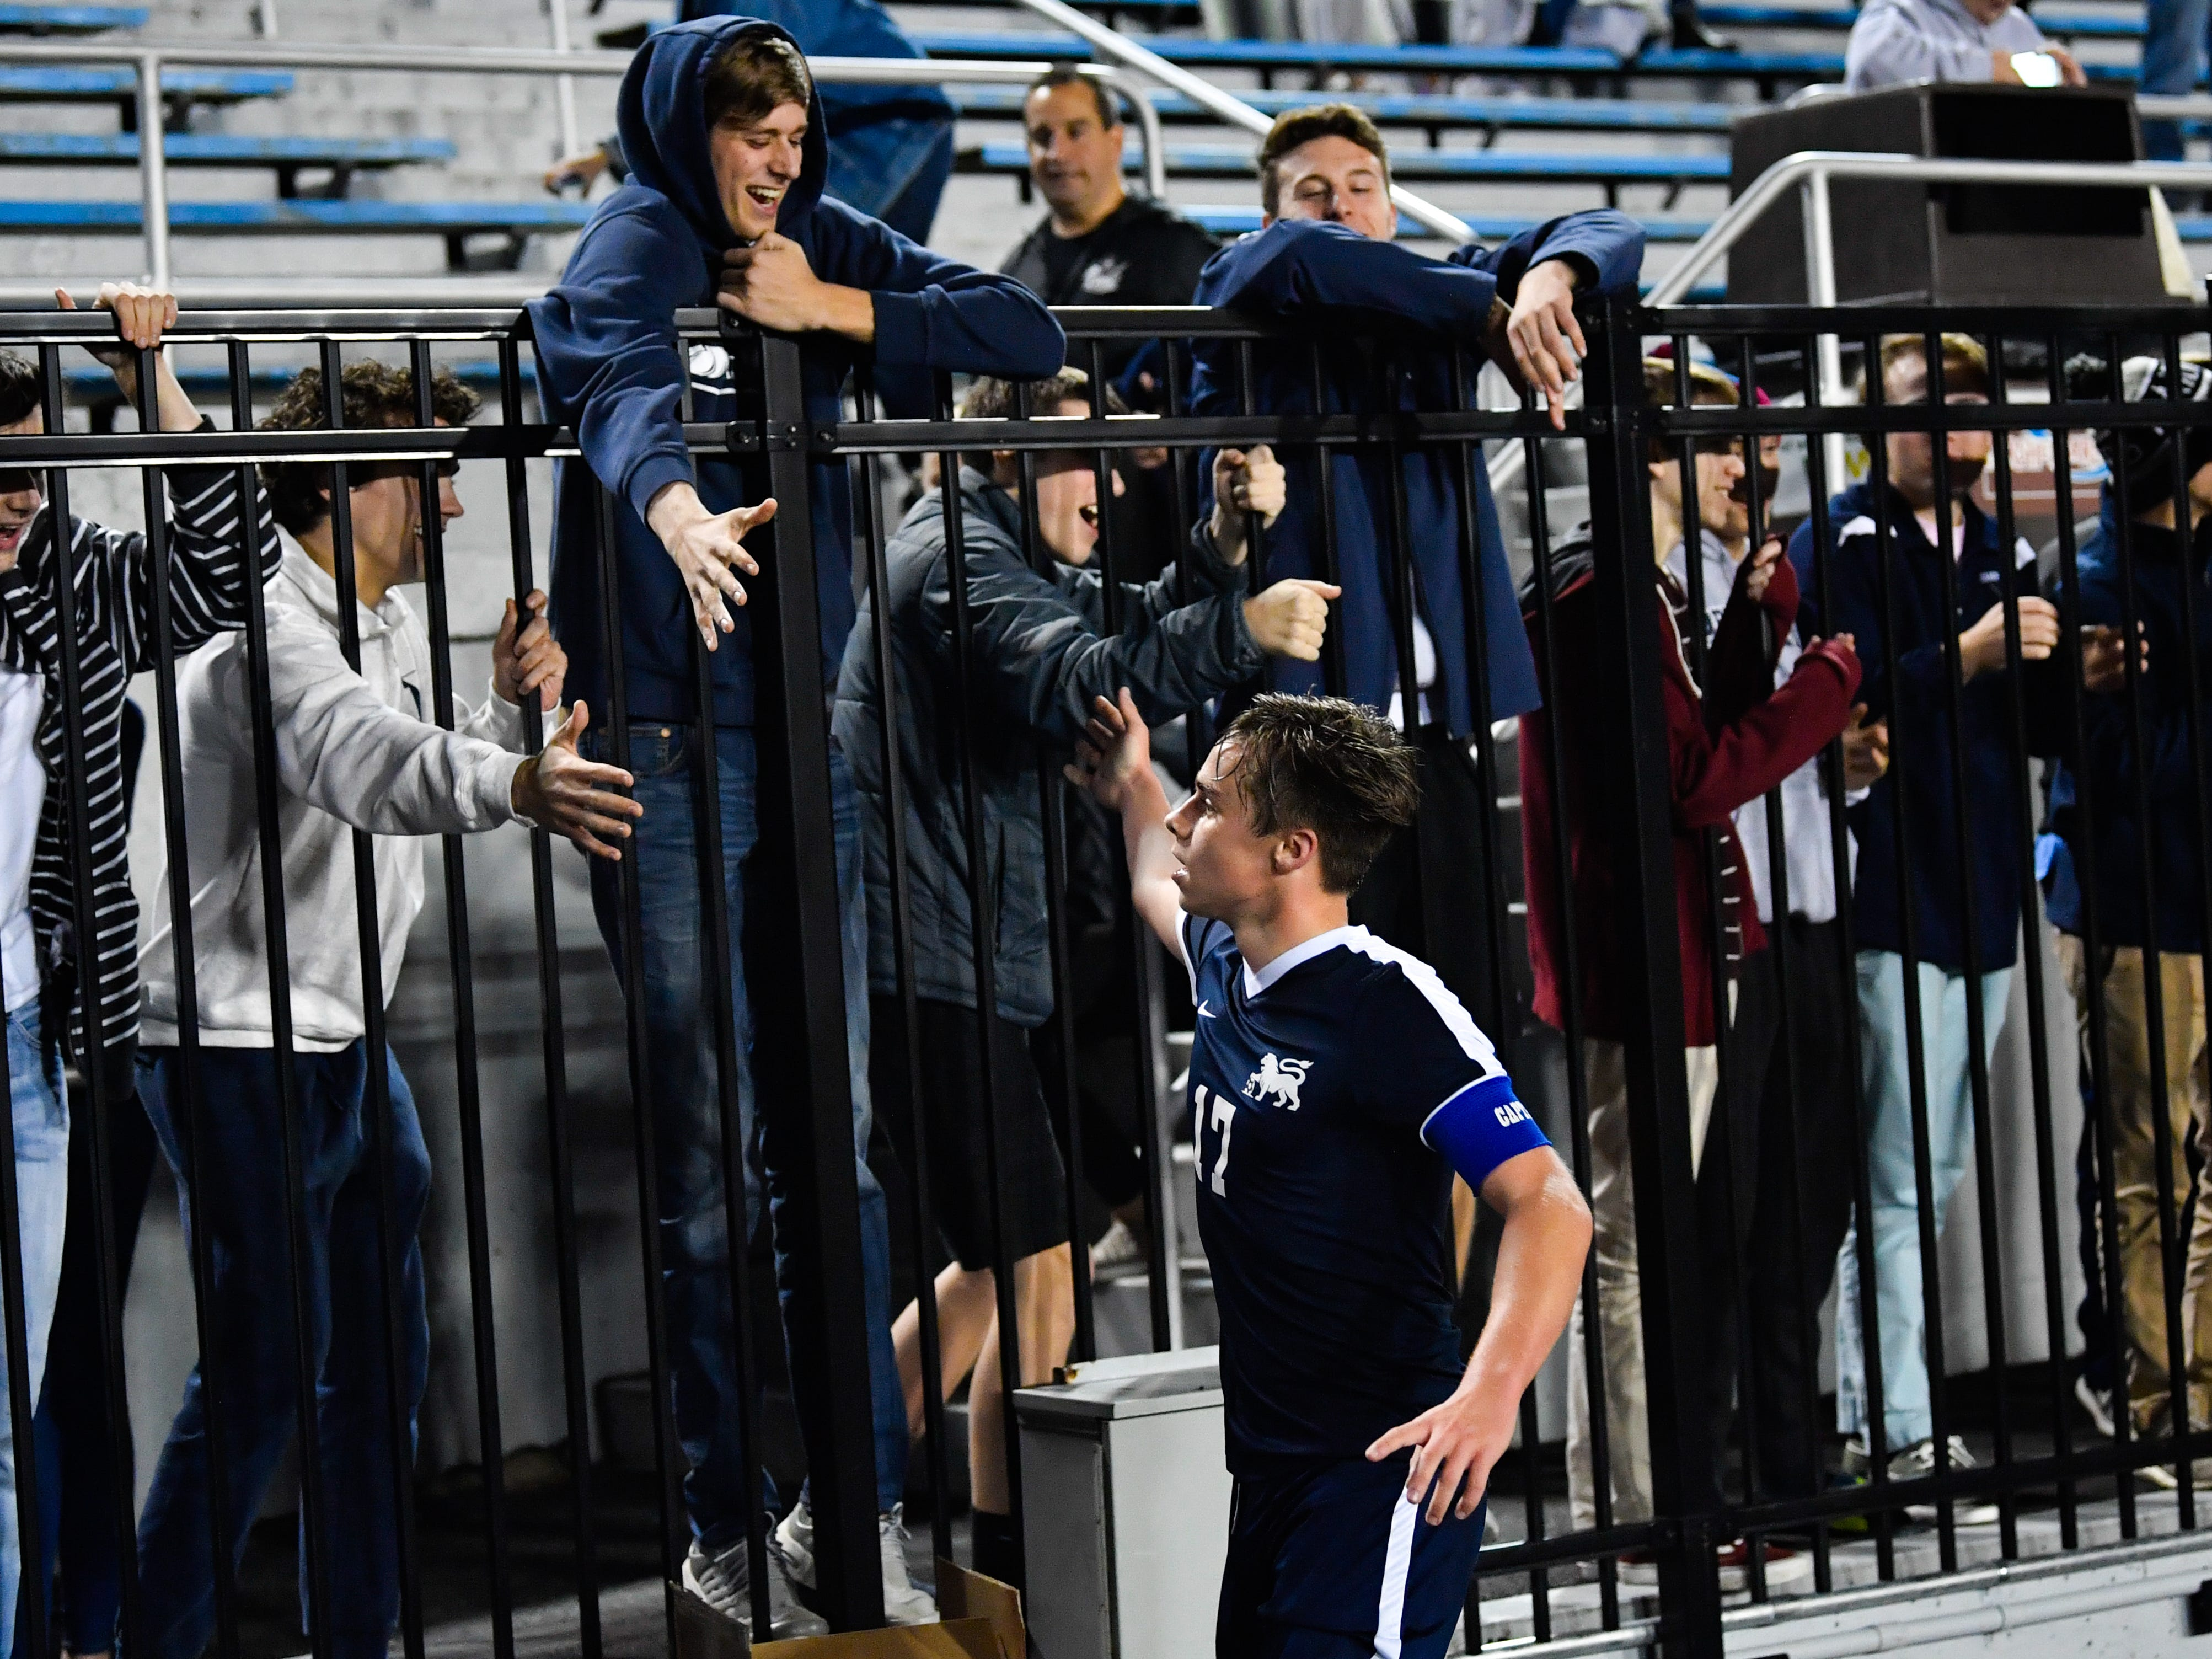 Camp Hill celebrates with their fans after the District 3 Class 1A boys' soccer finals between York Catholic and Camp Hill at Hersheypark Stadium, October 31, 2018. The Lions beat the Fighting Irish 2-0.